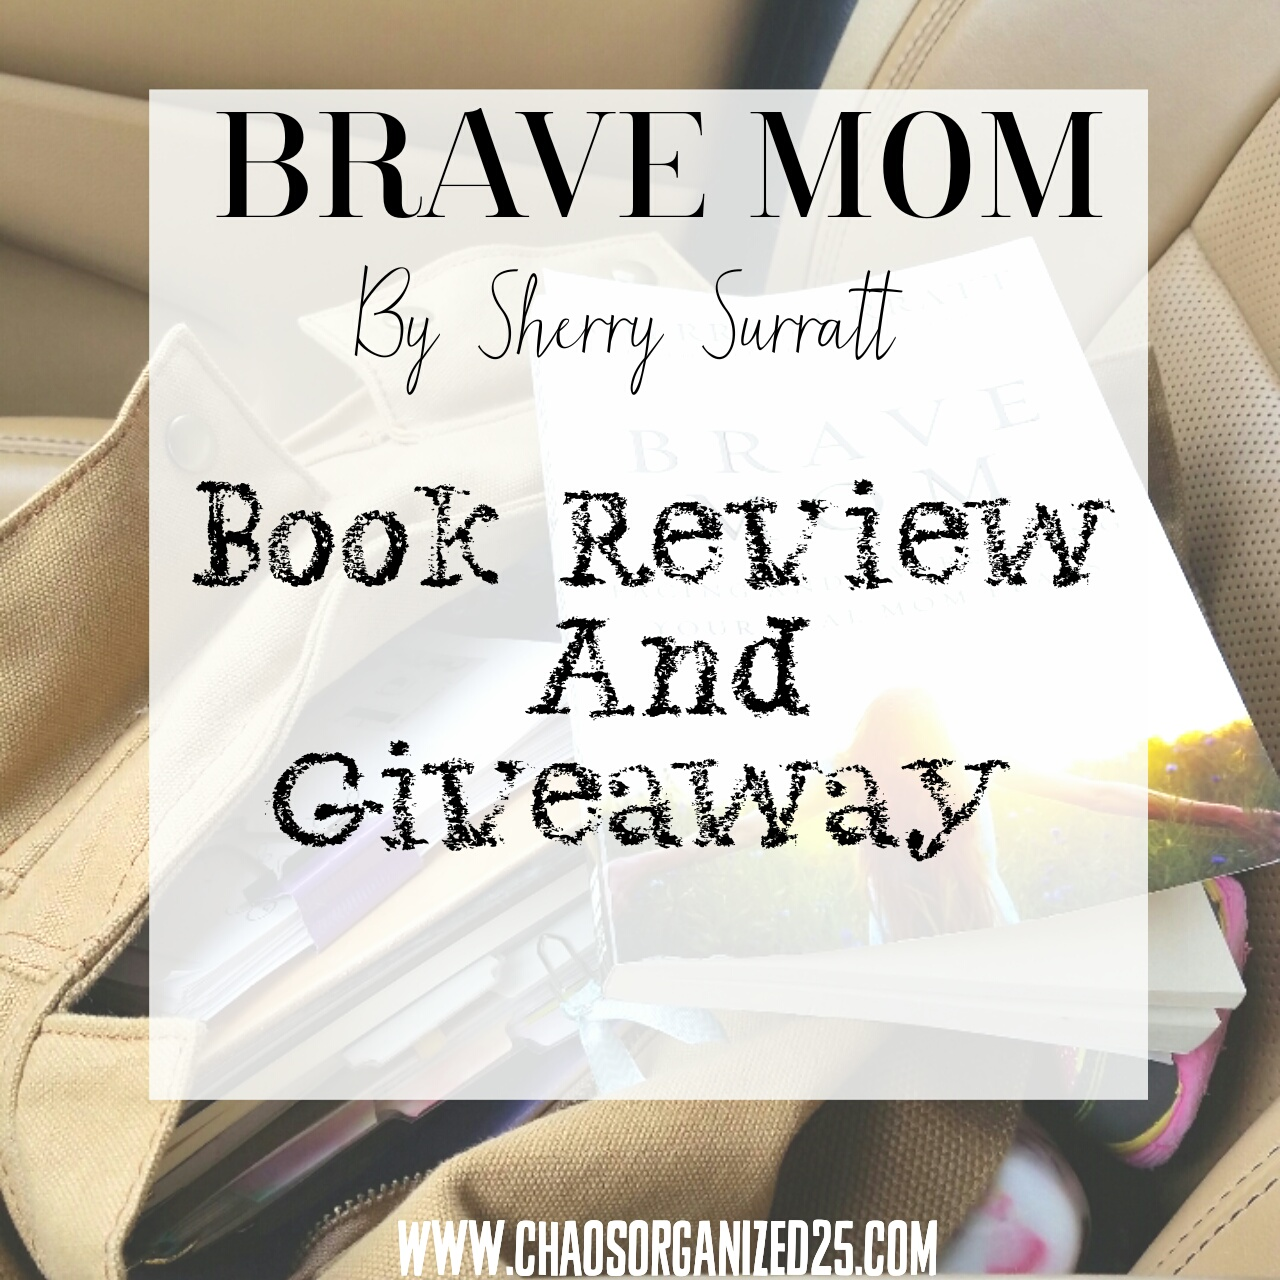 Brave Mom Book Review and Giveaway